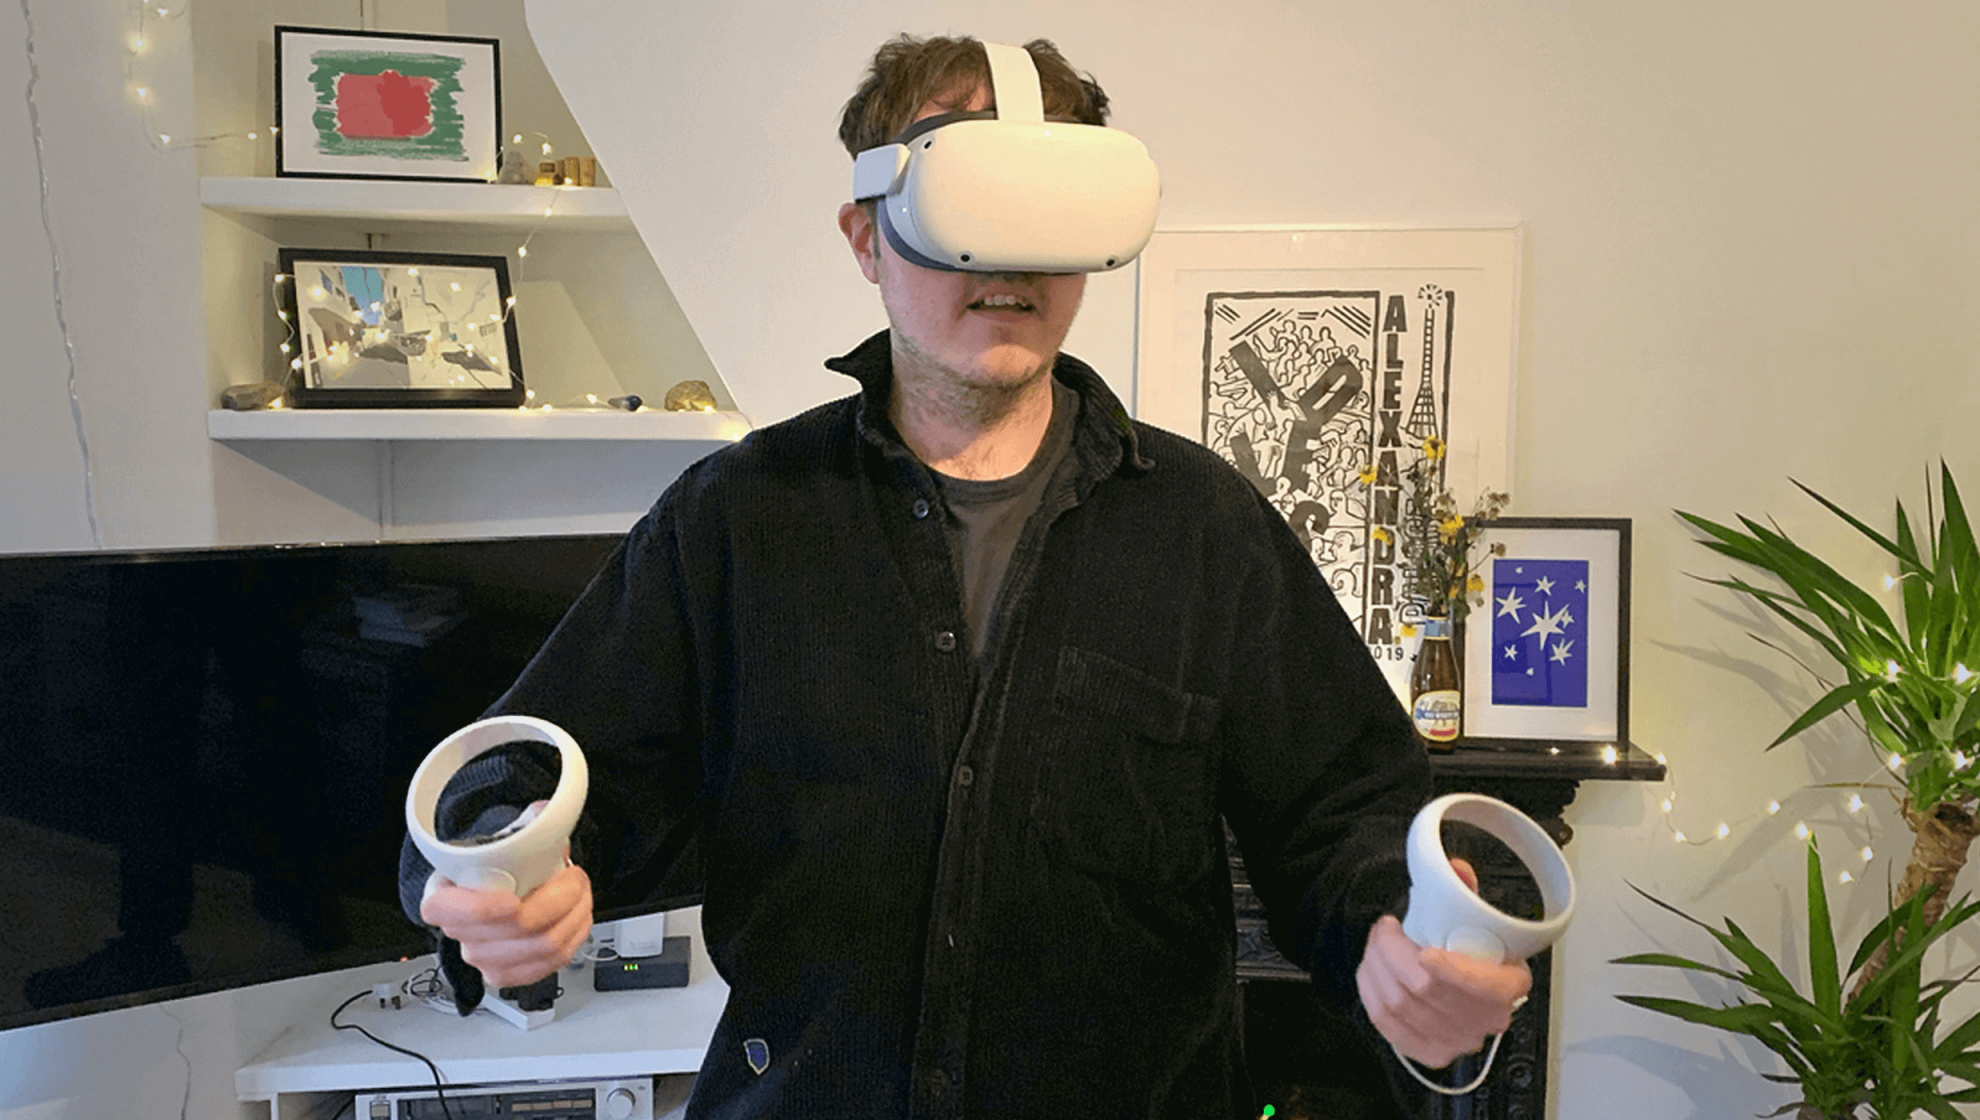 GoCardless sales team member using virtual reality headset